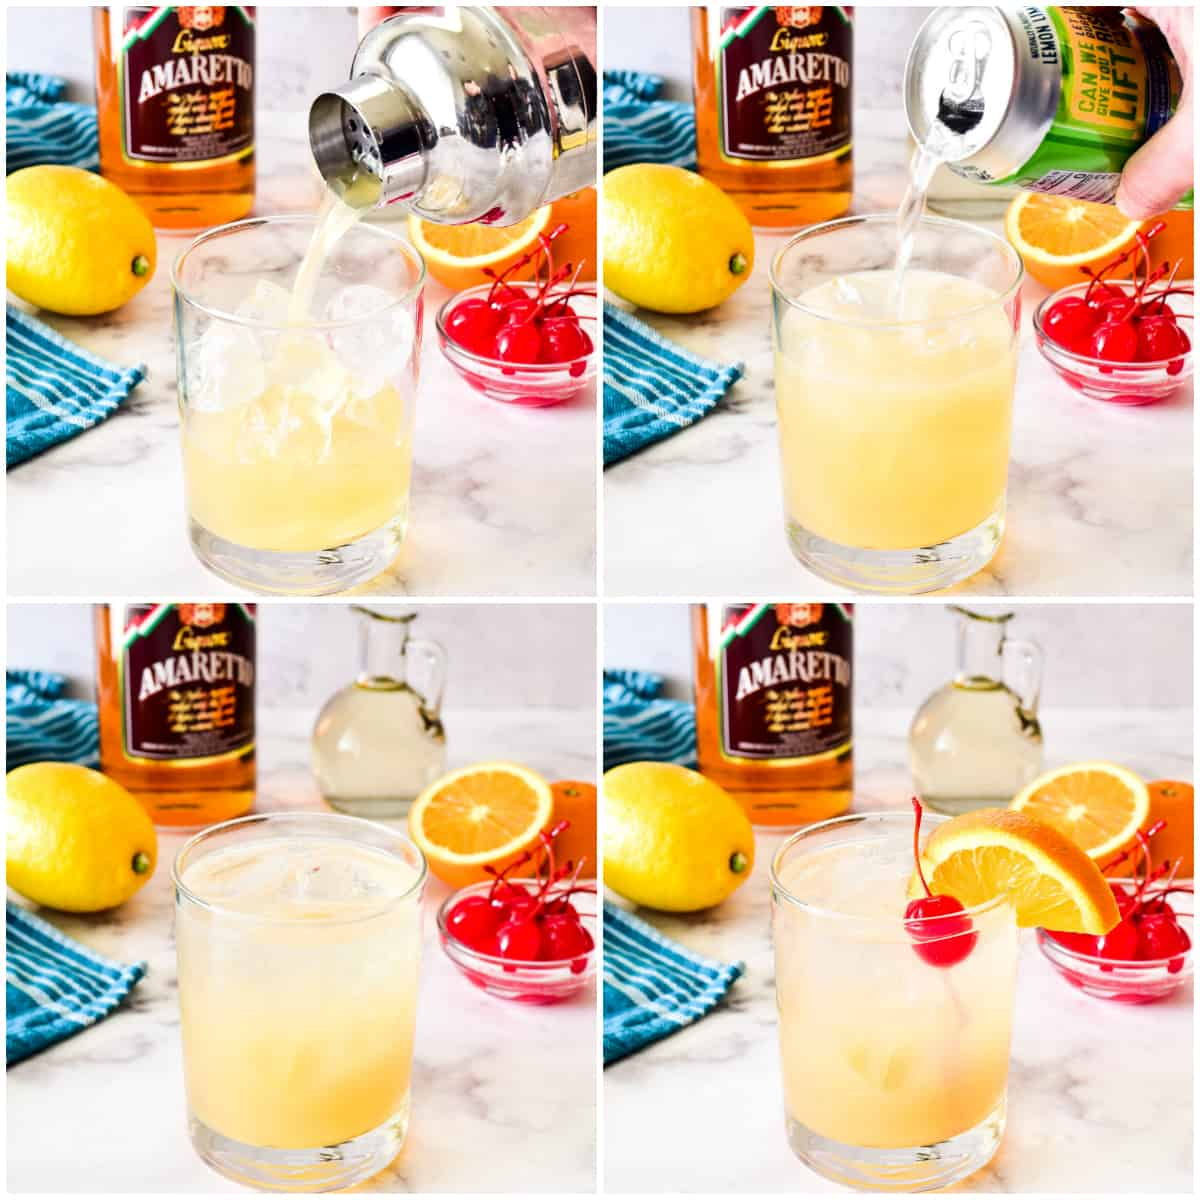 Process shots for pouring and garnishing Amaretto Sour